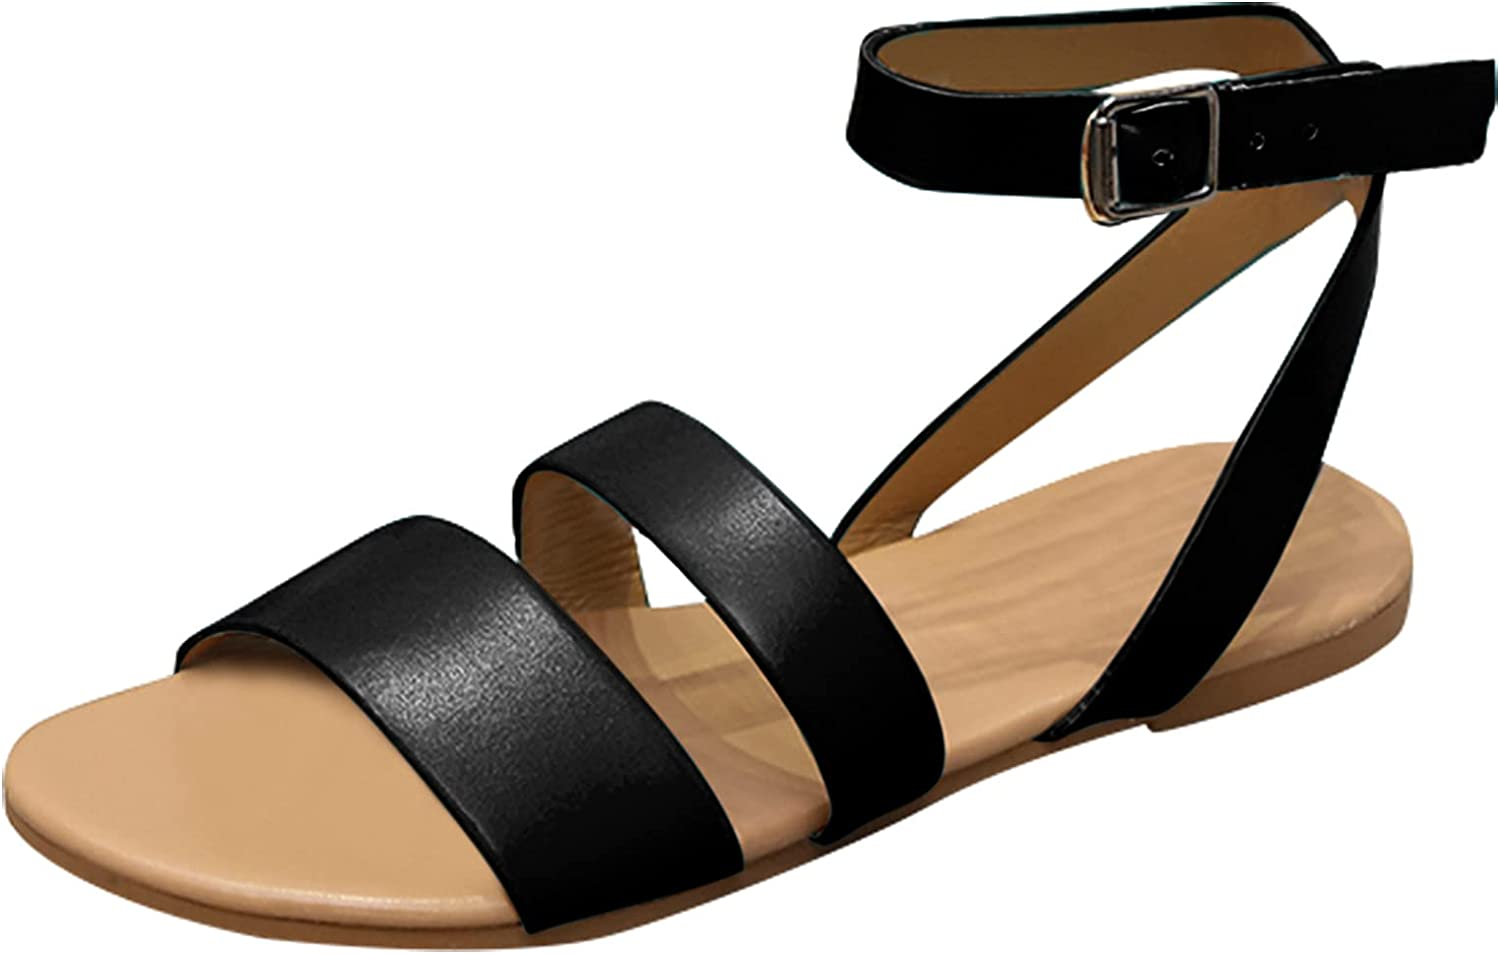 Sandals for Women Flat Casual Summer Ankle 5 ☆ very Minneapolis Mall popular Toe with B Beach Open